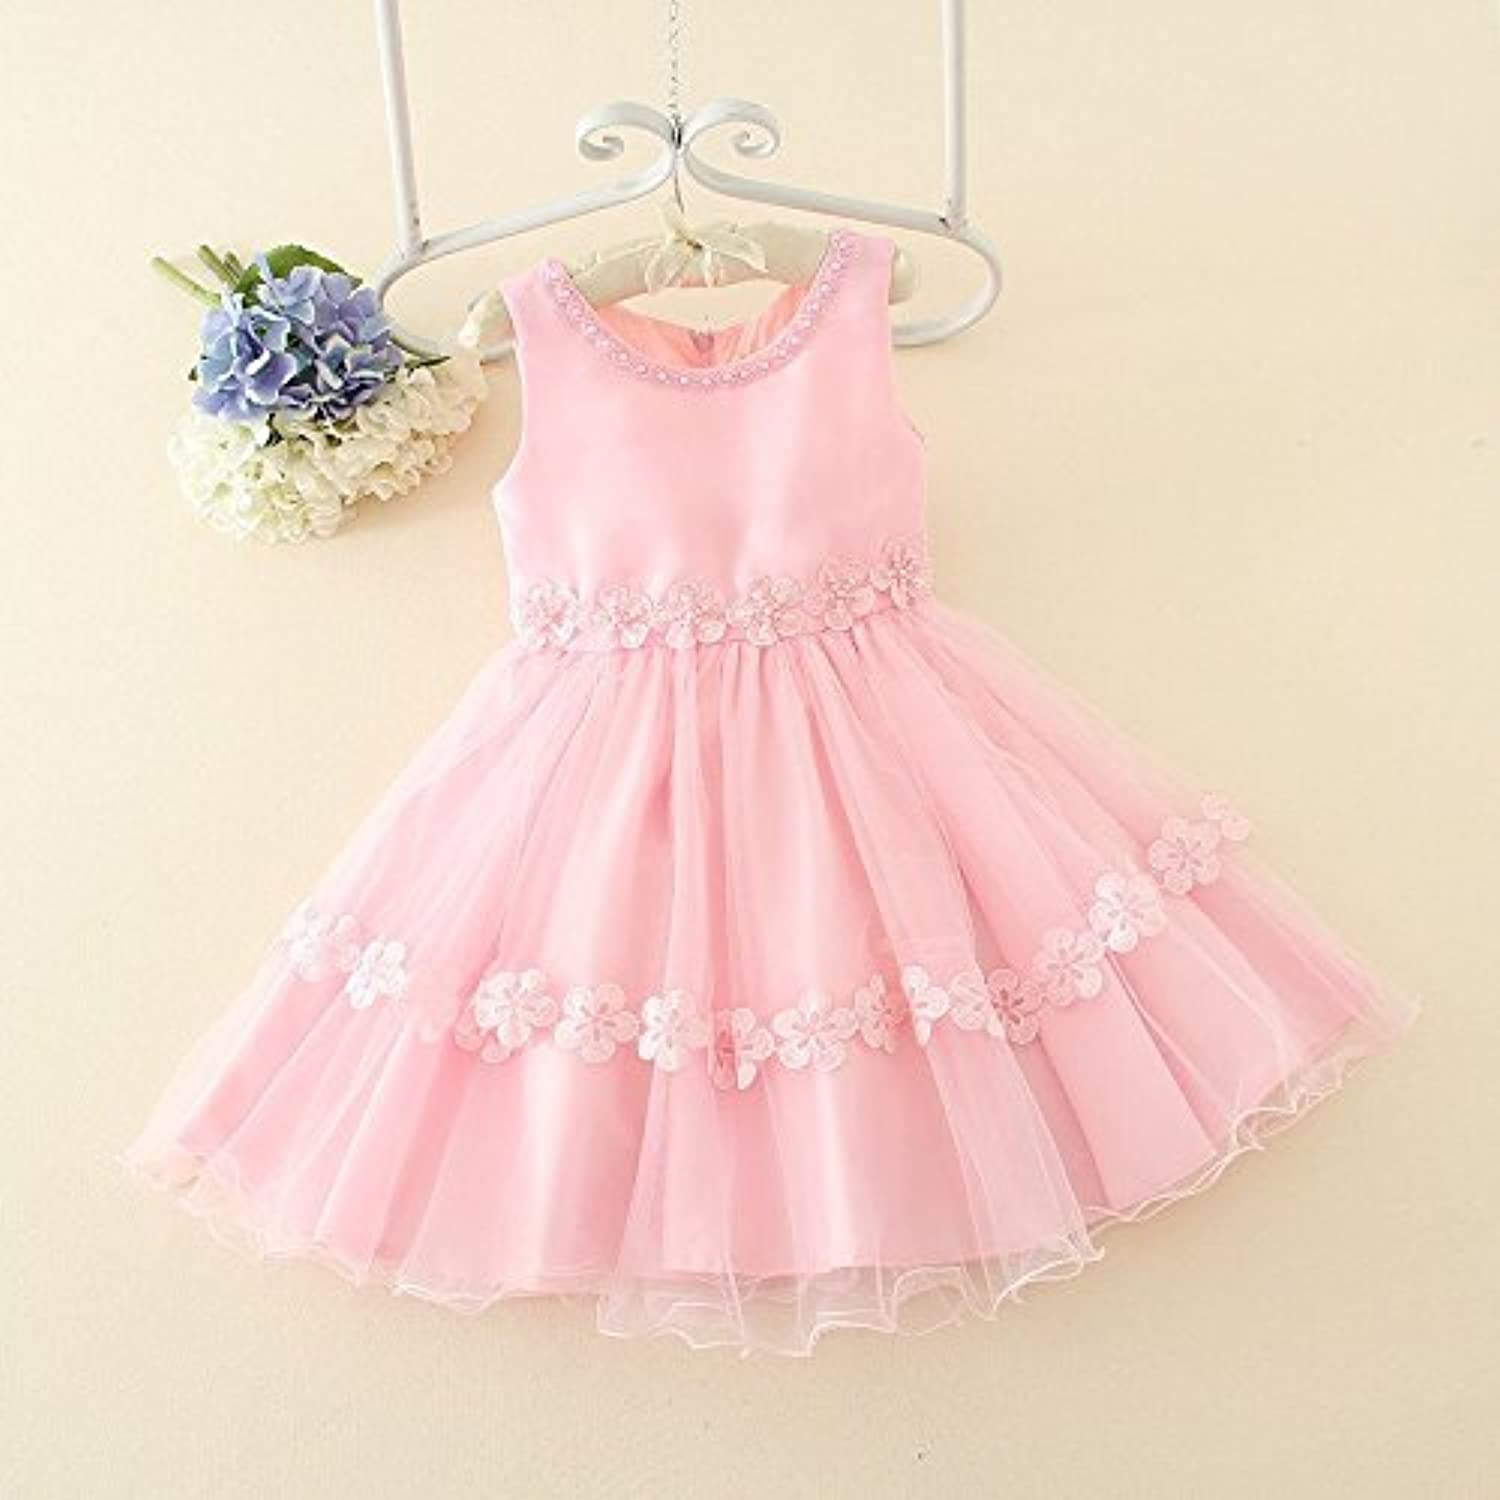 Puff Dress_Korean New Soft Yarn Beaded Puff Dress